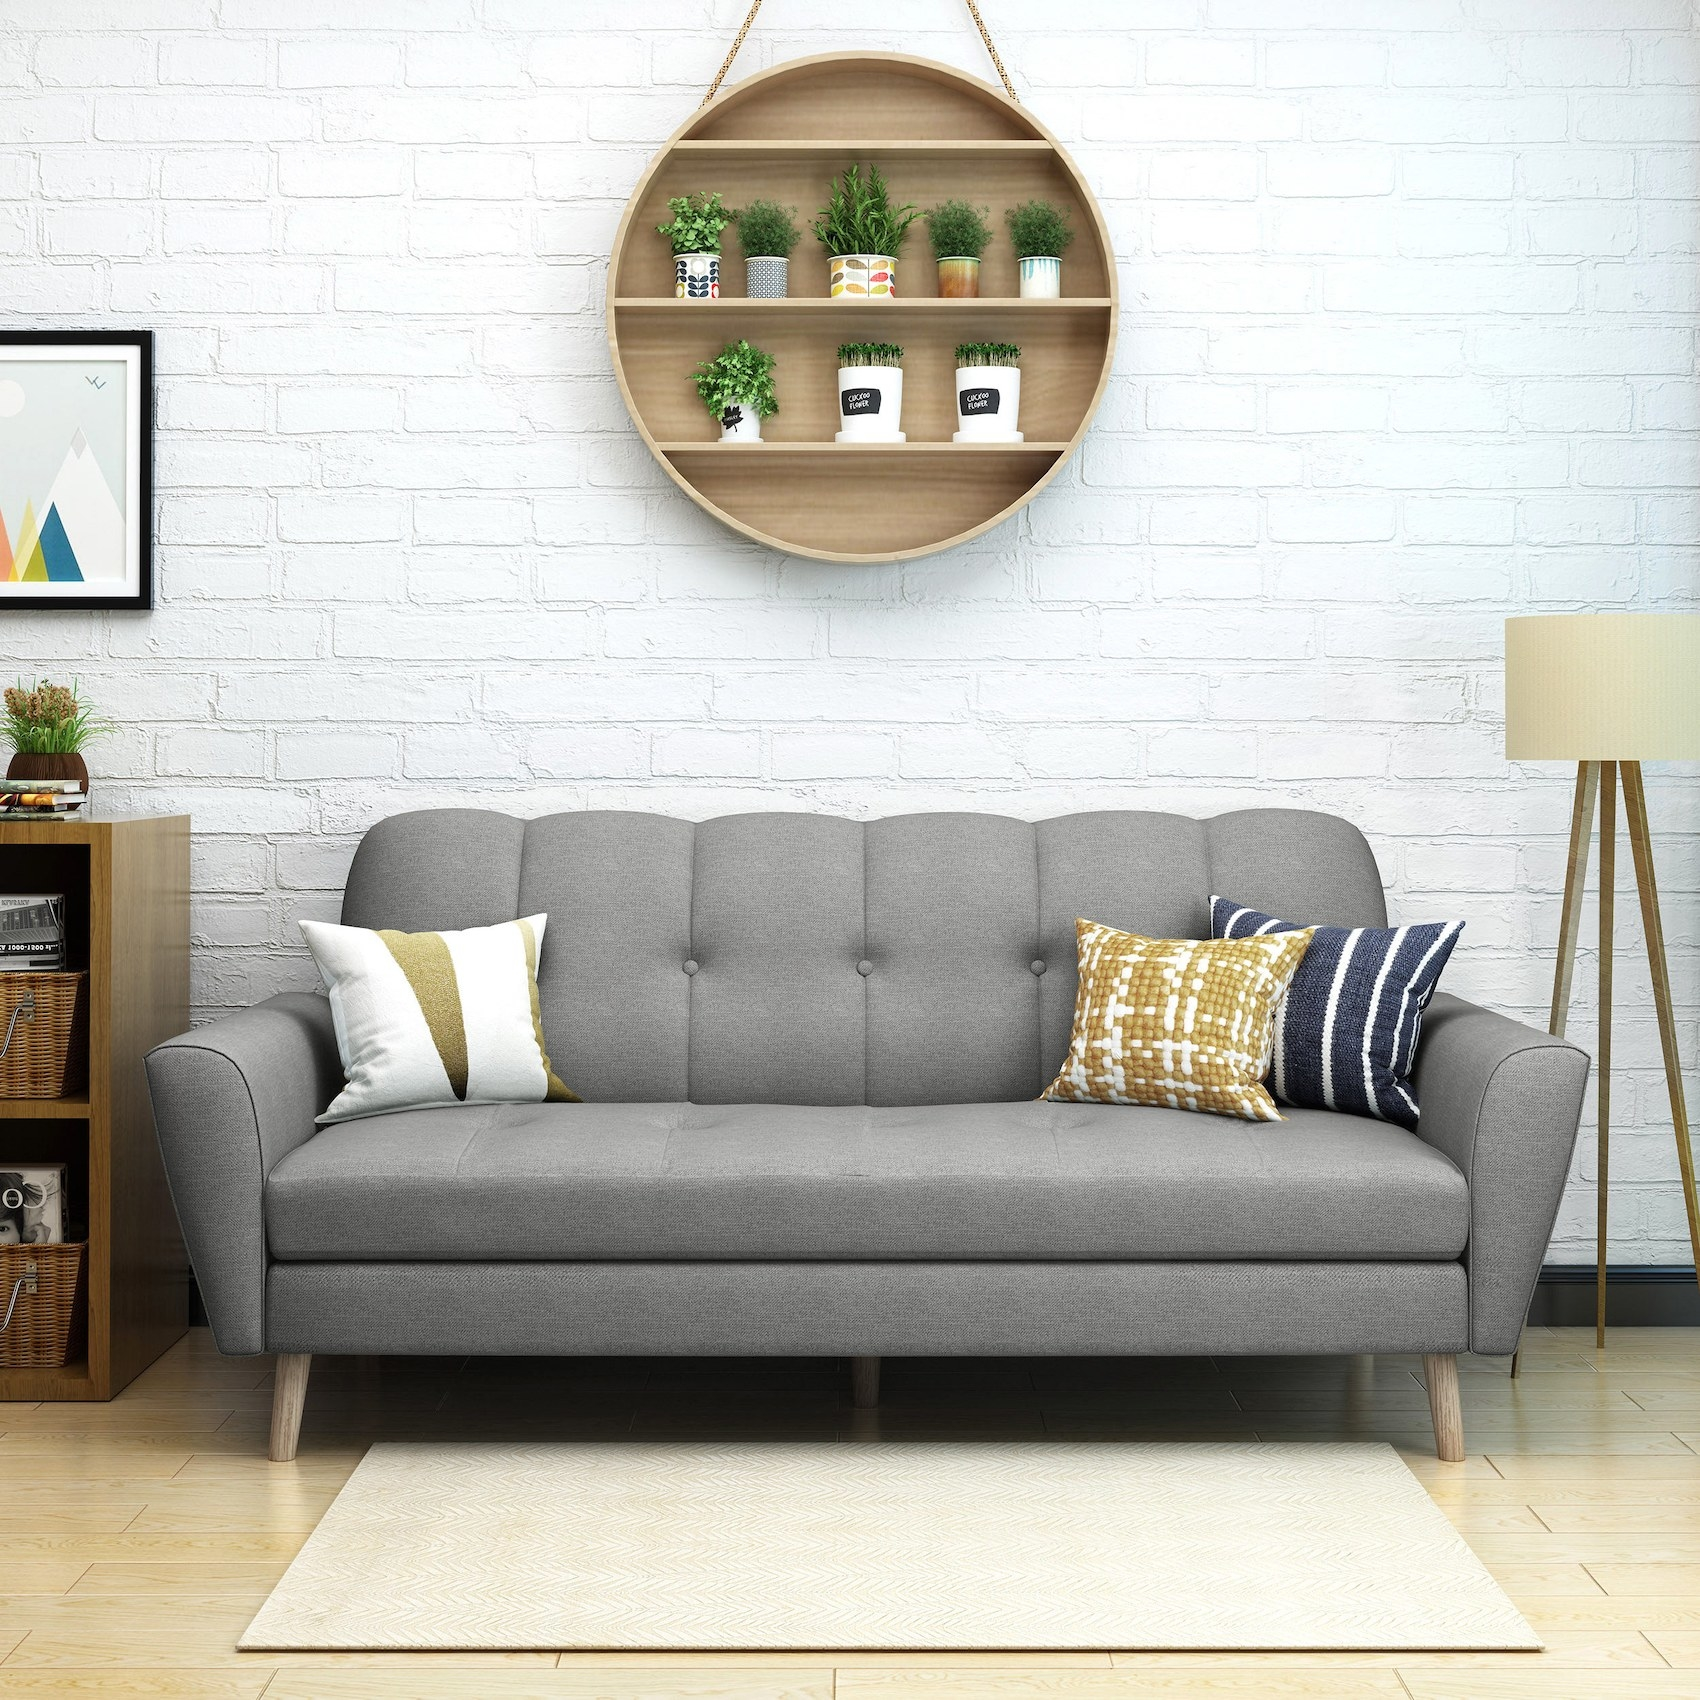 A gray sofa with a curved back and button tufting in a living room